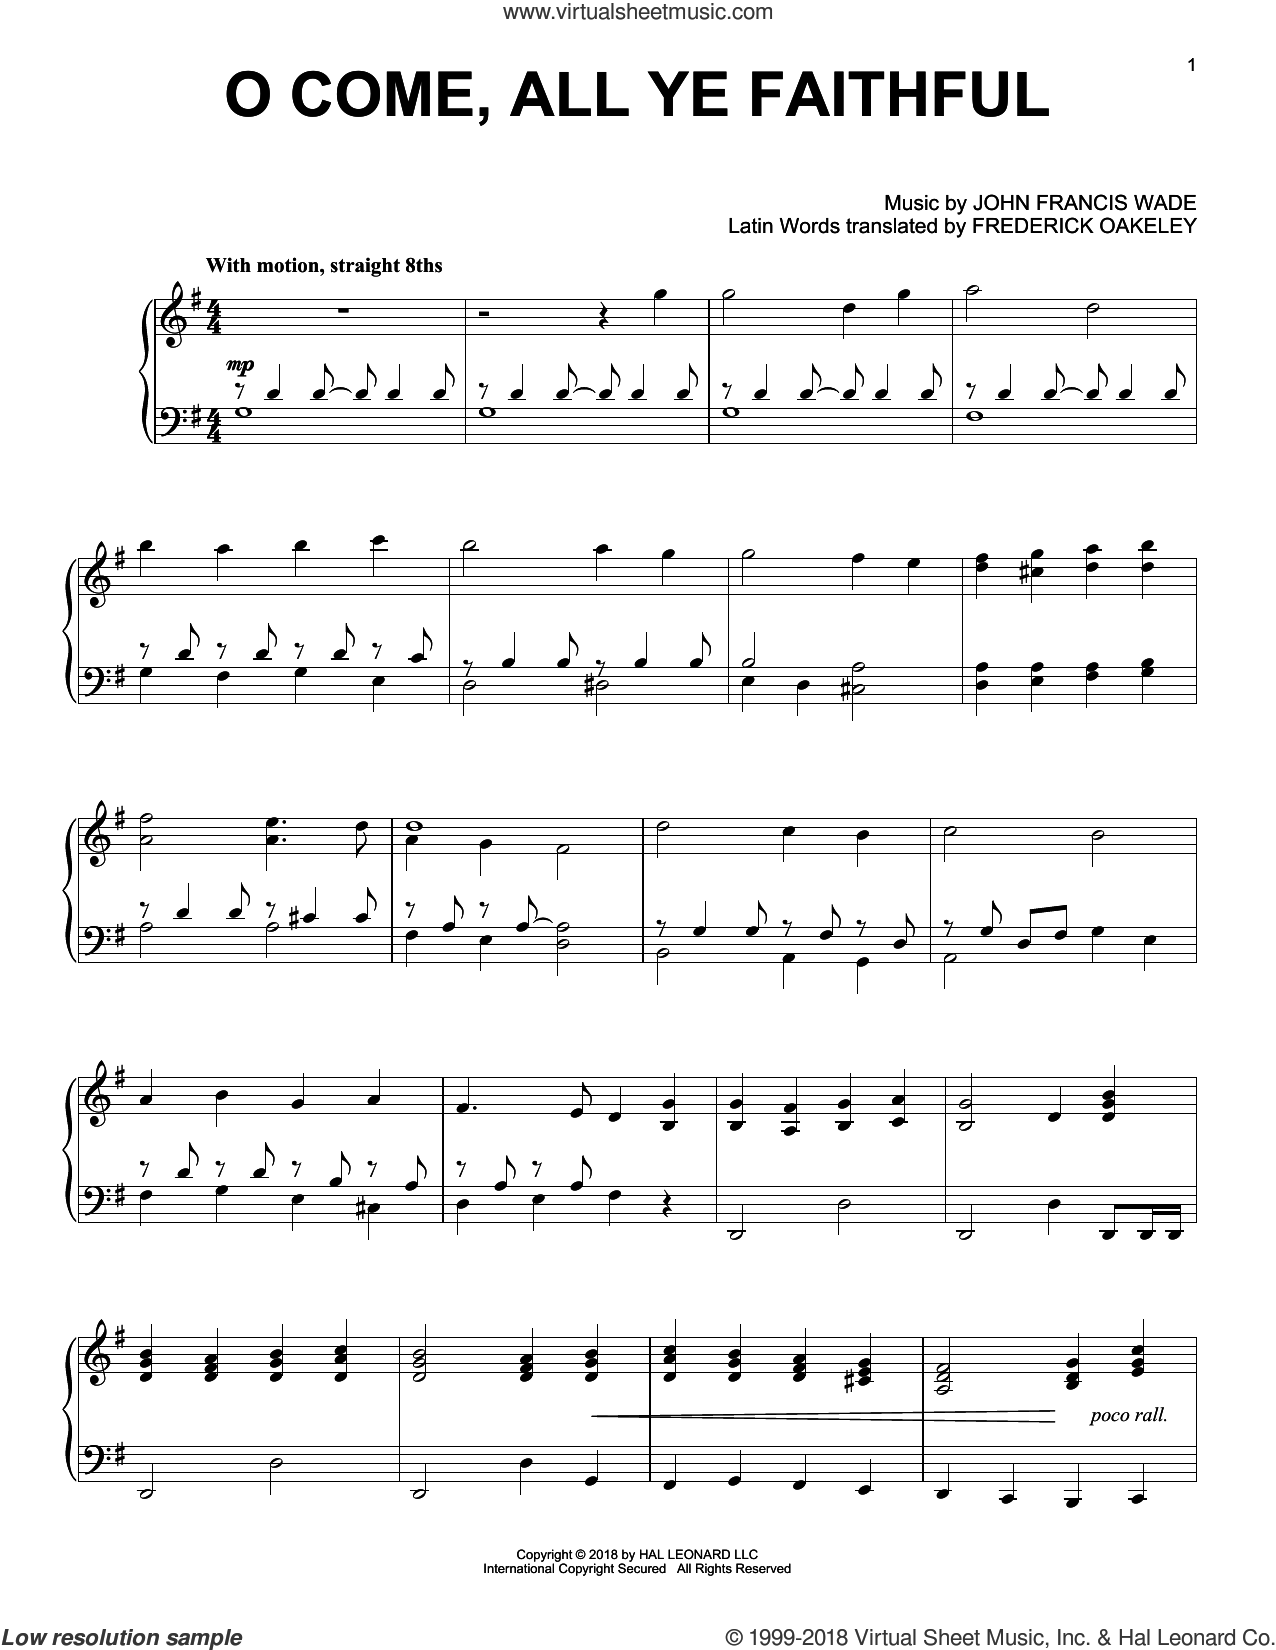 O Come, All Ye Faithful [Jazz version] sheet music for piano solo by John Francis Wade and Frederick Oakeley (English), intermediate skill level